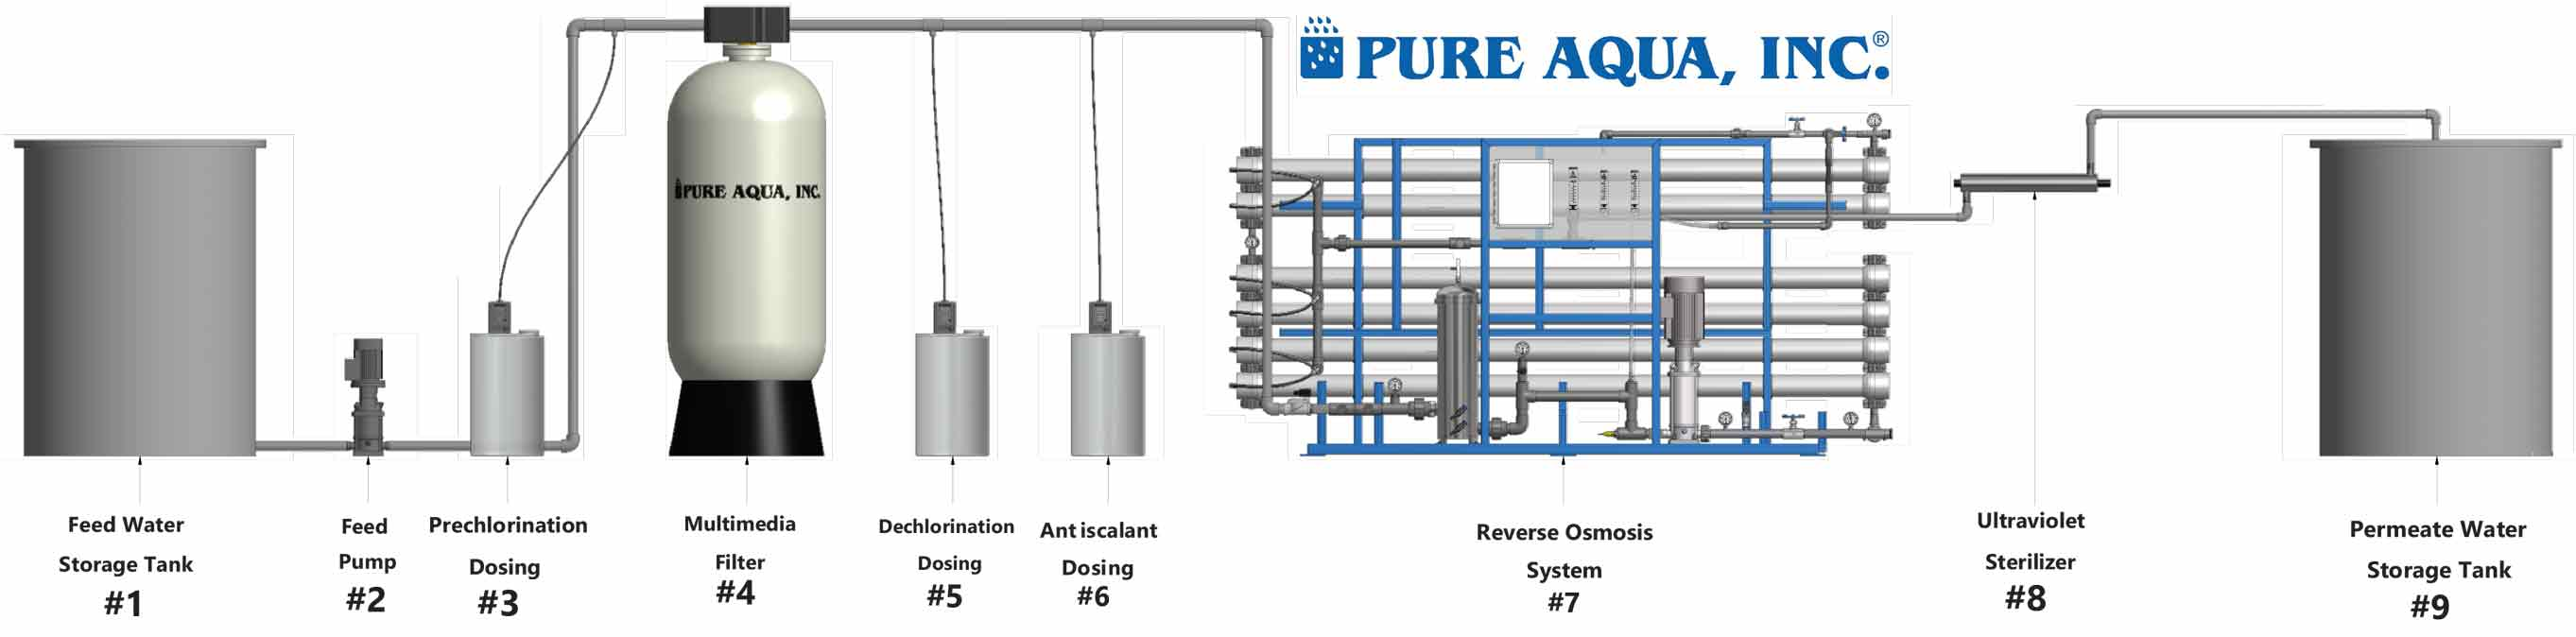 water-treatment-system-for-food-and-beverage.jpg